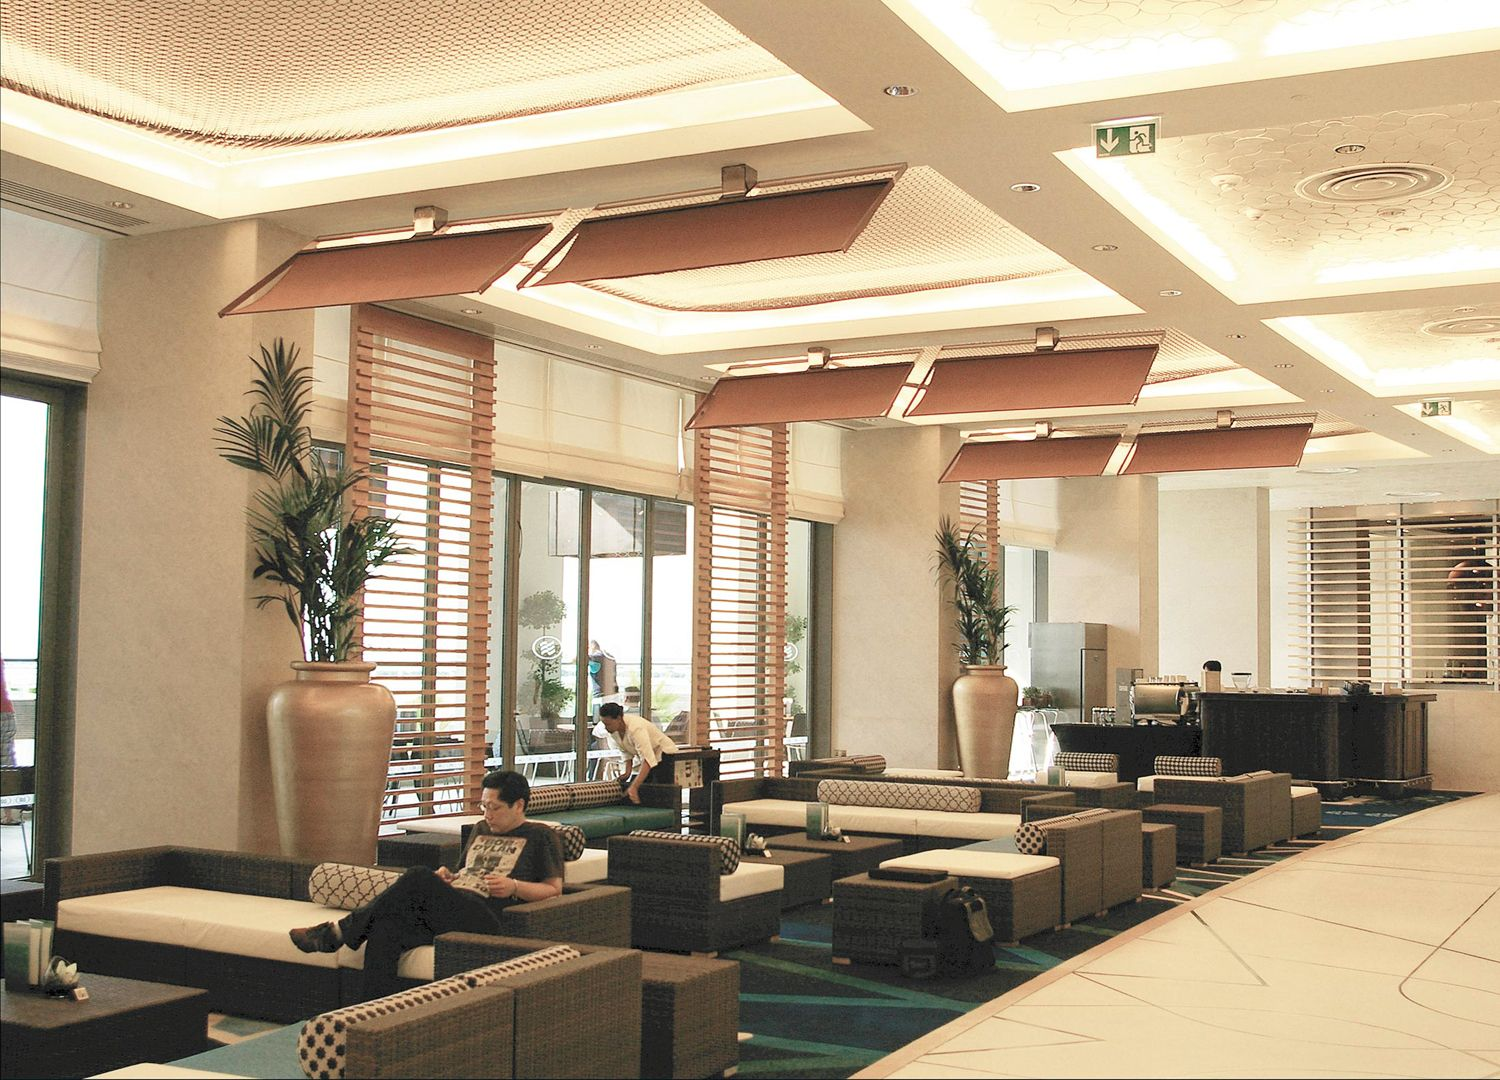 The Solitaire Punkah swinging ceiling fans at Crowne Plaza Abu Dhabi. All  fans are wirelessly